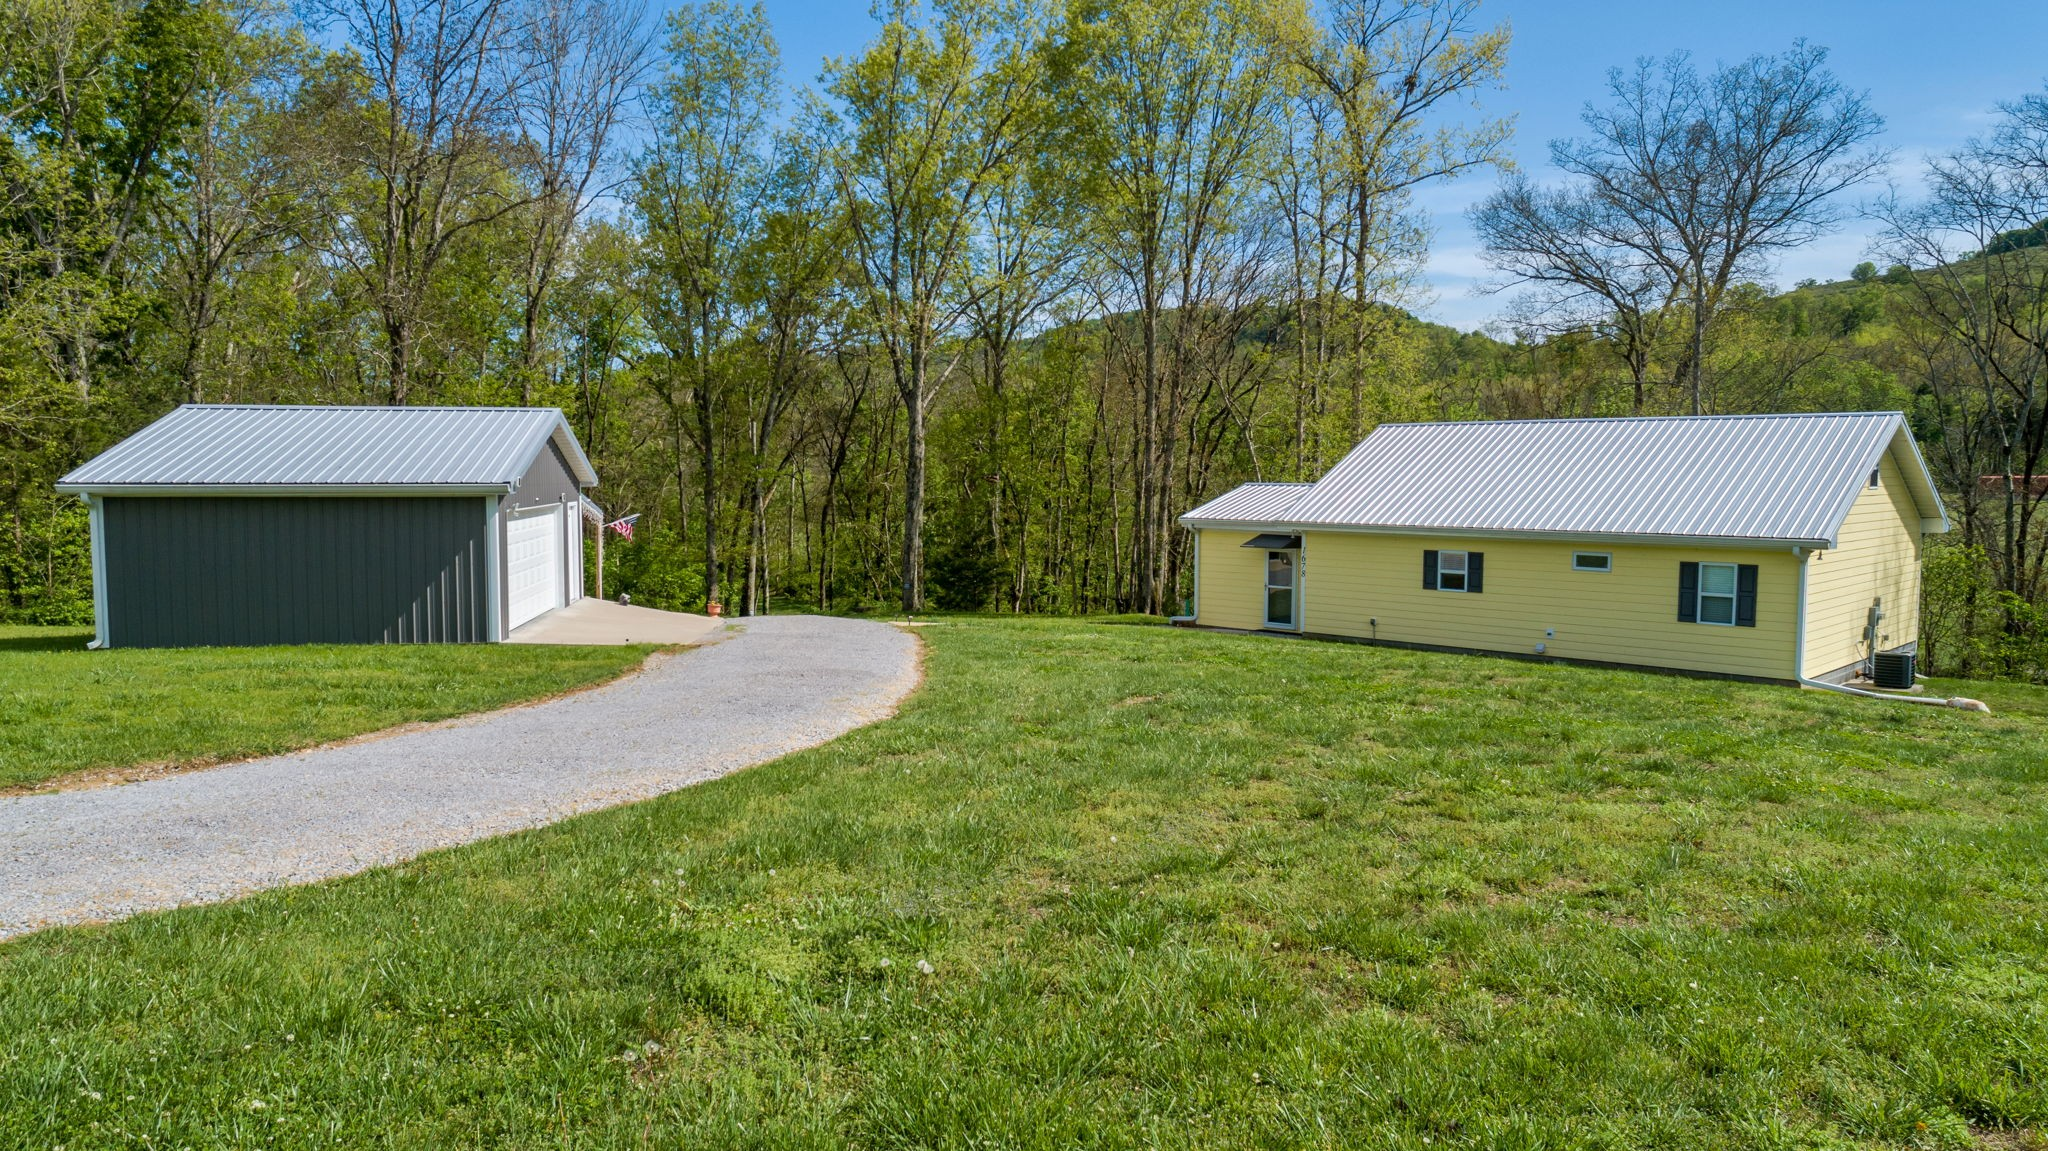 1684 Burt Rd, Woodbury, TN 37190 - Woodbury, TN real estate listing